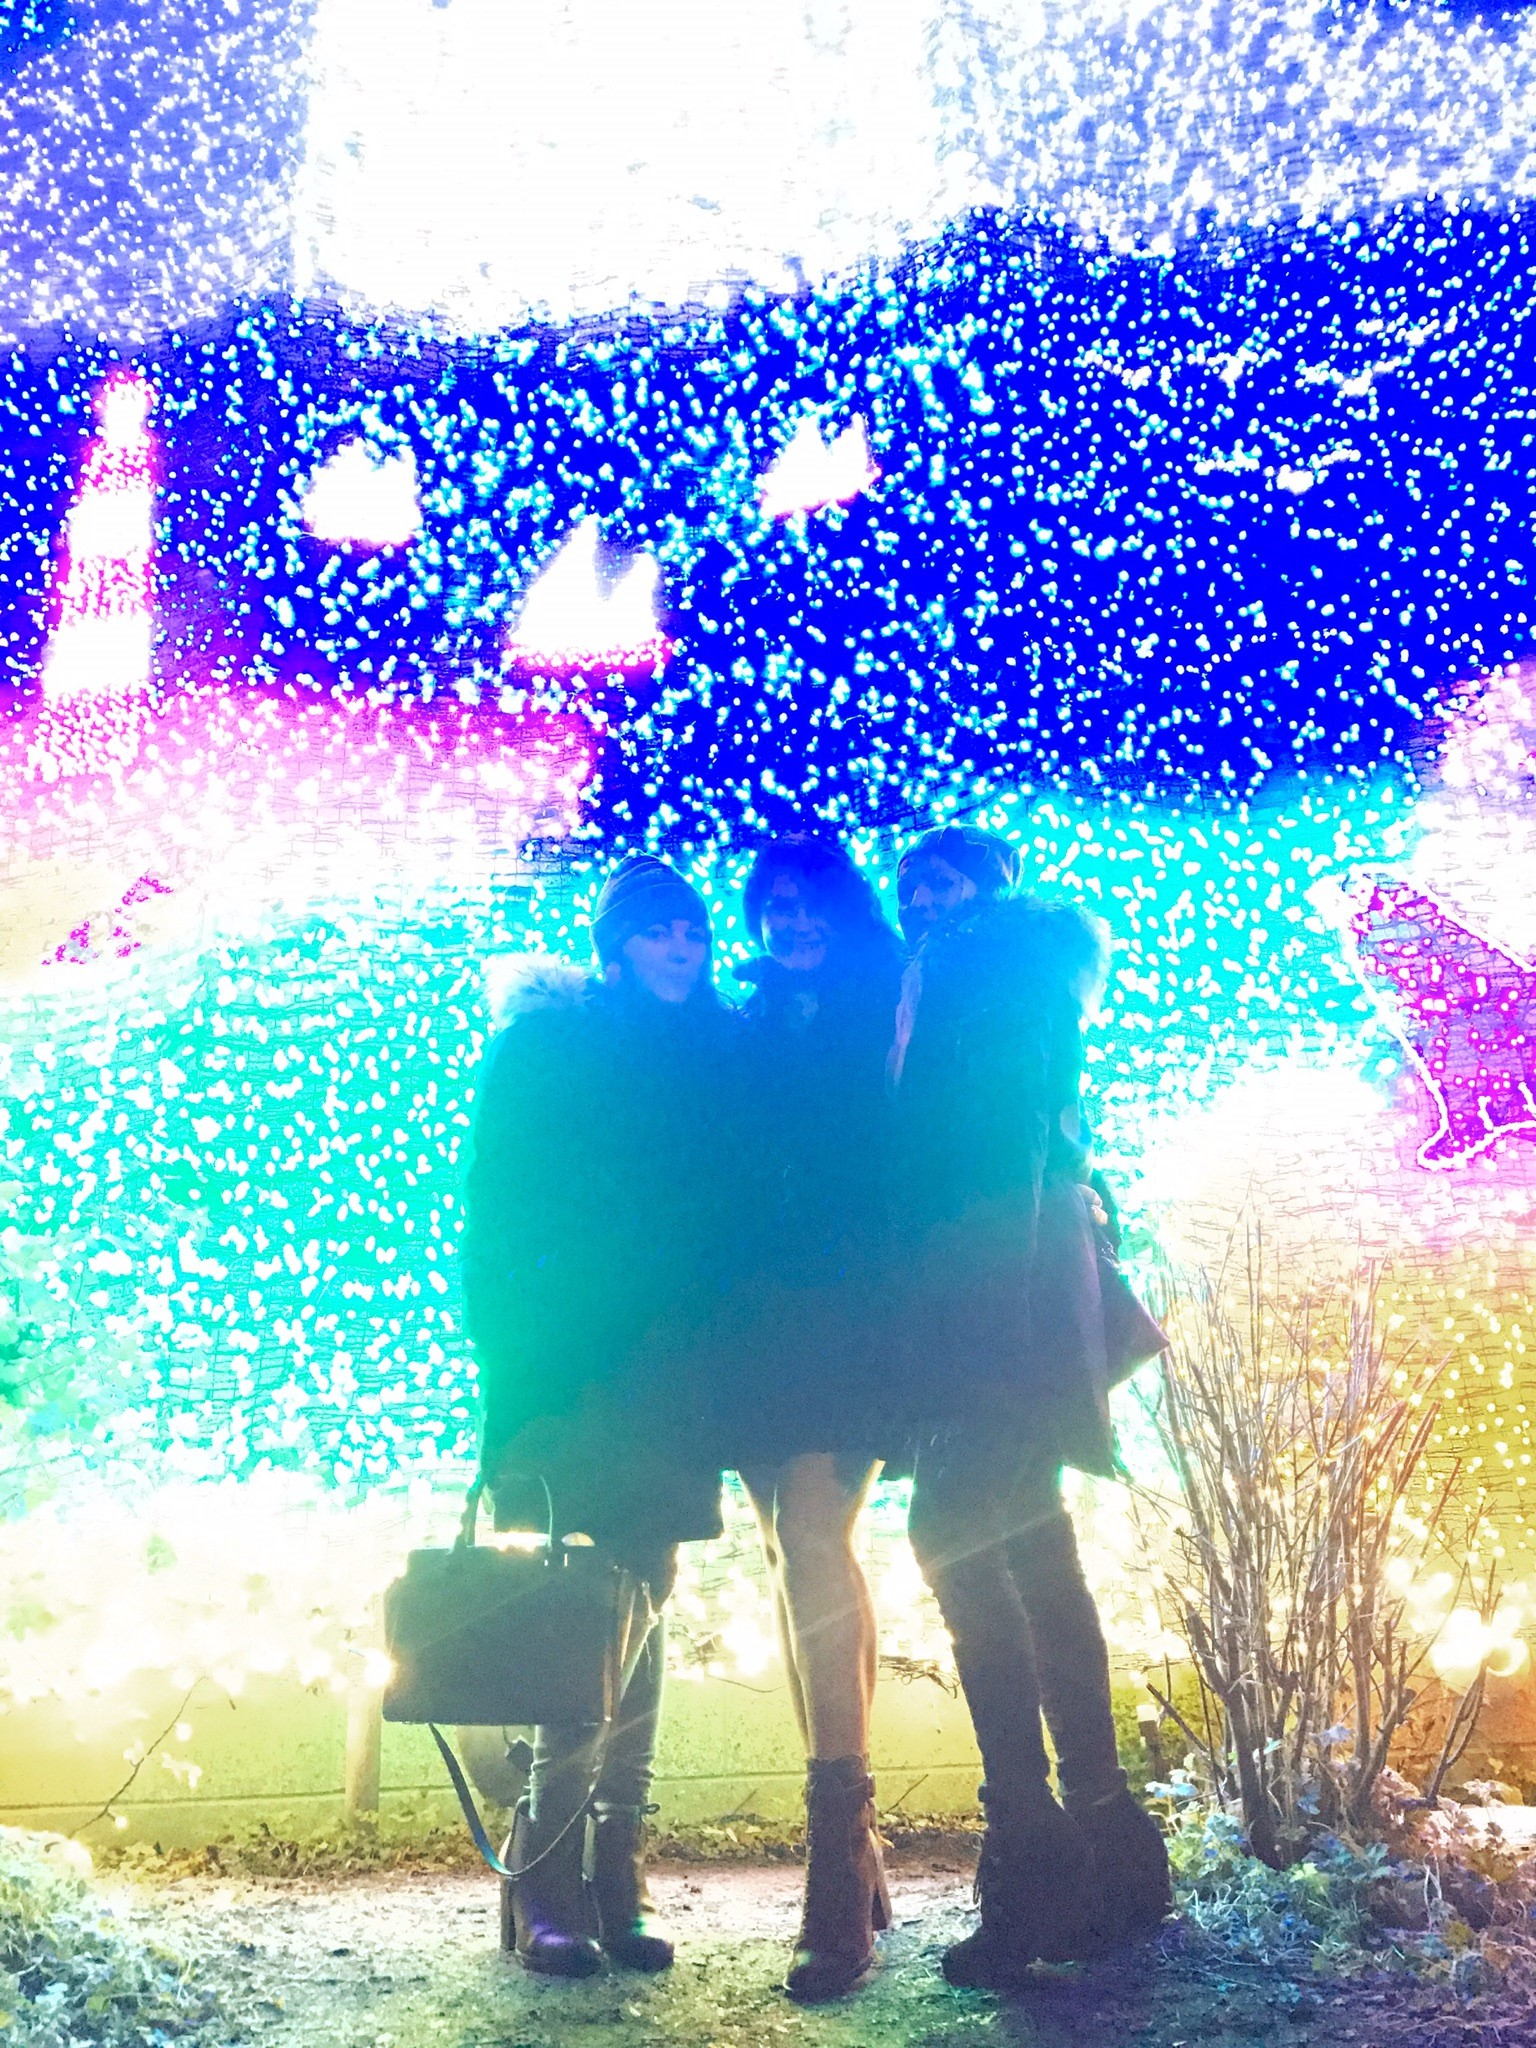 My sister, family friend, and I standing in front of a wall of lights at the Zoo.